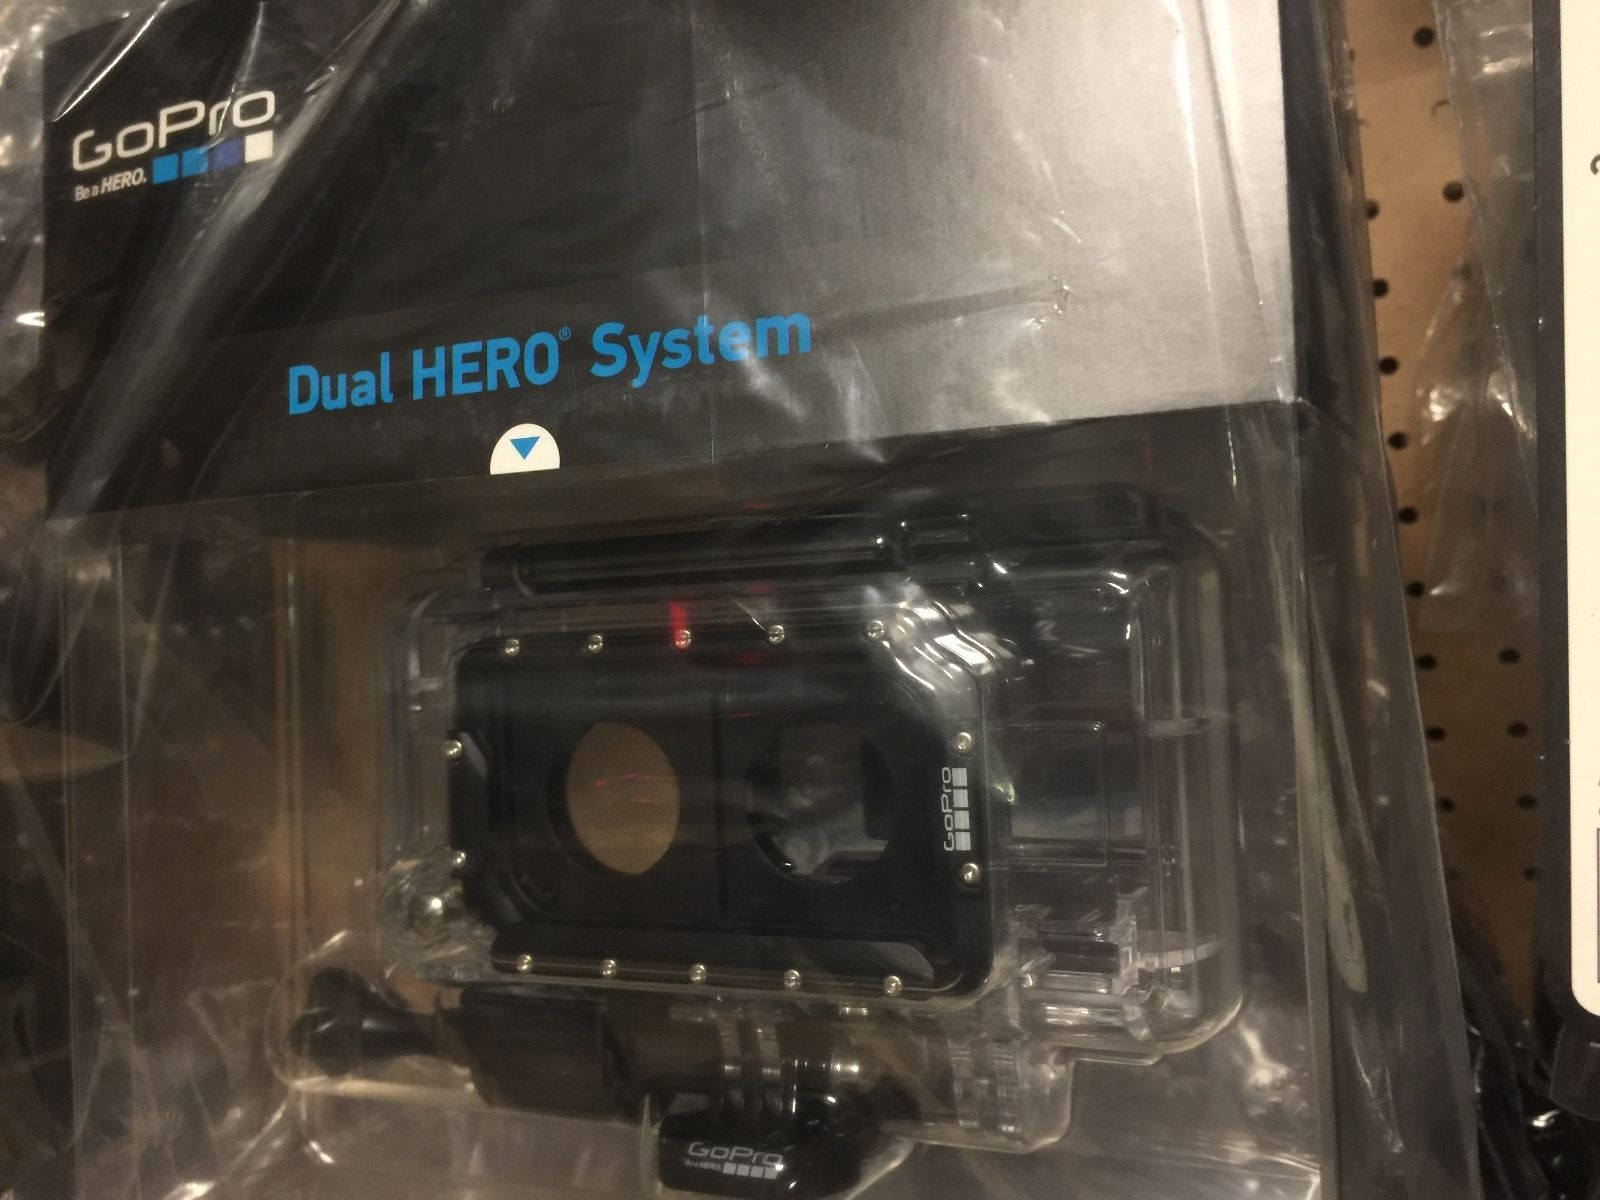 3D Gopro HD Dual Hero 3+ Underwater Camera Housing AHD3D-301